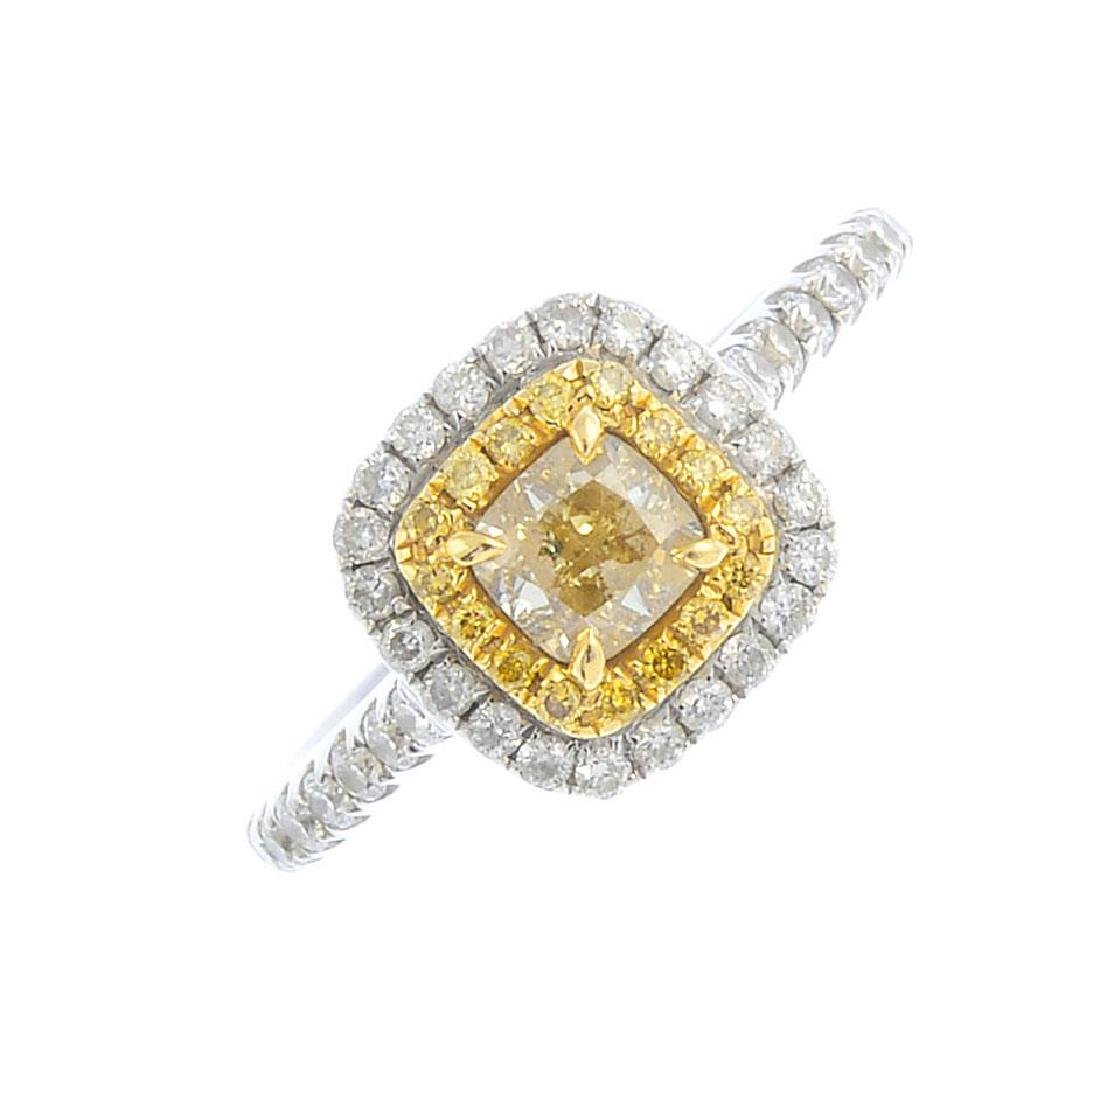 An 18ct gold 'coloured' diamond and diamond cluster